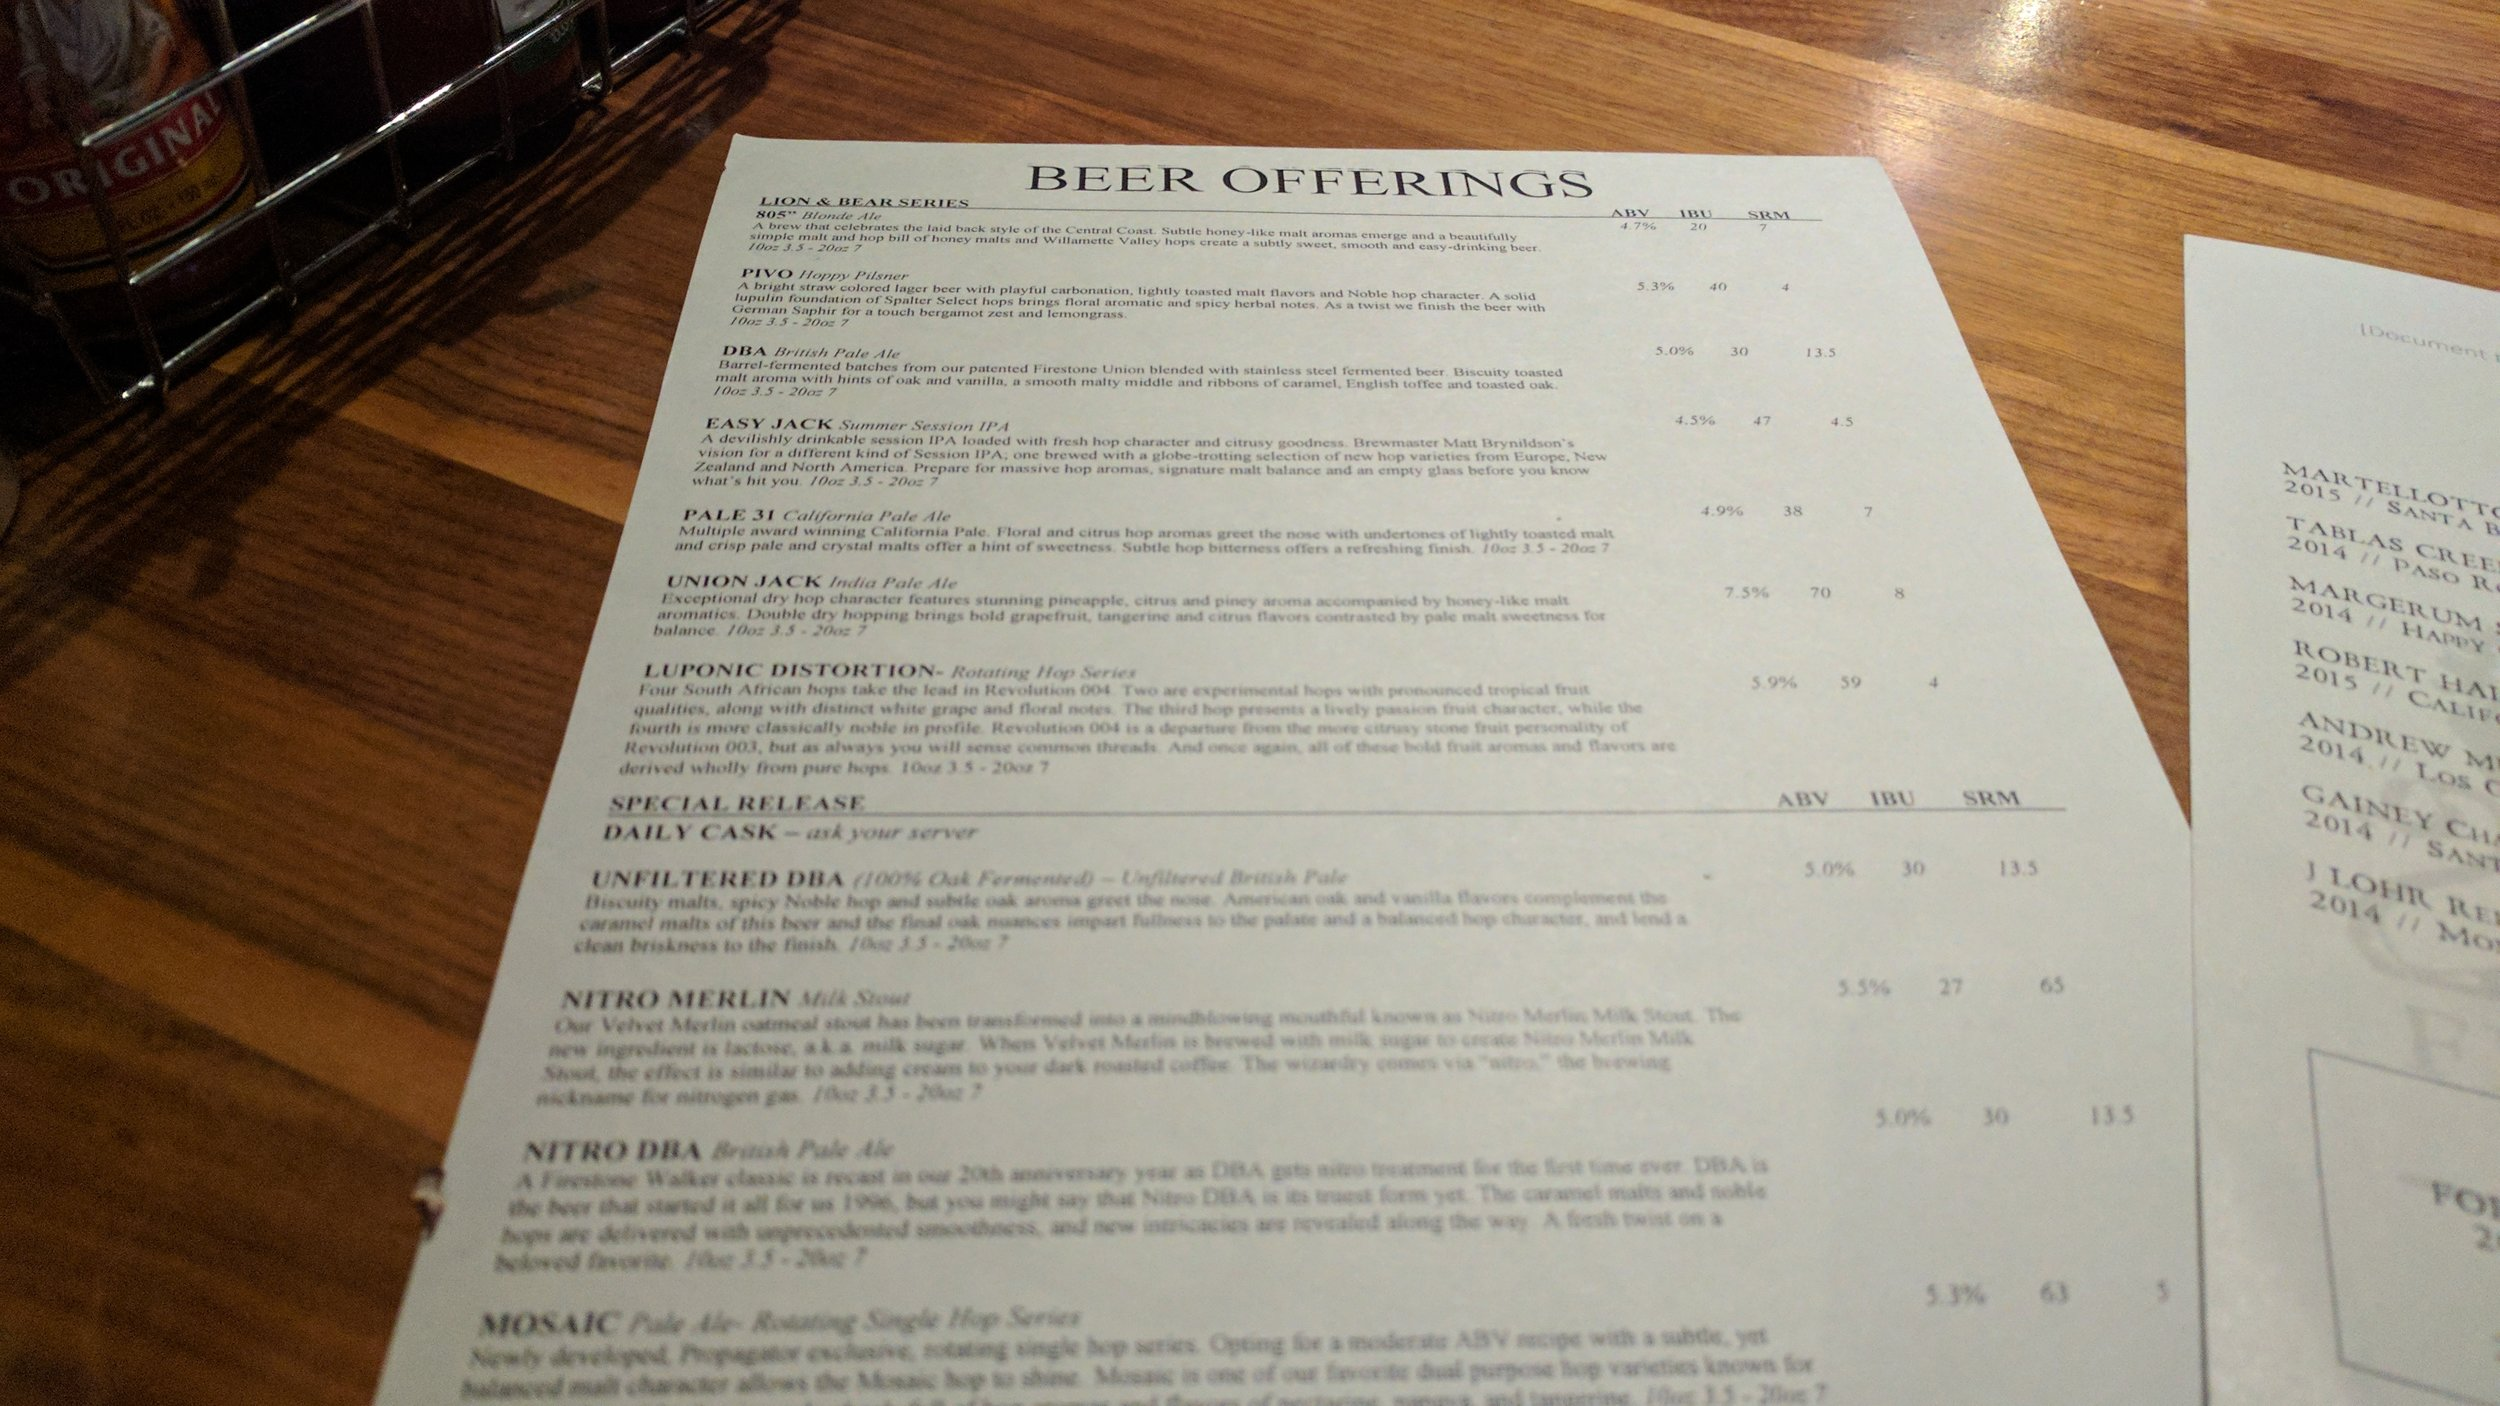 The beer offerings are very extensive with the menu providing a ton of detail that will help educate the casual beer drinker